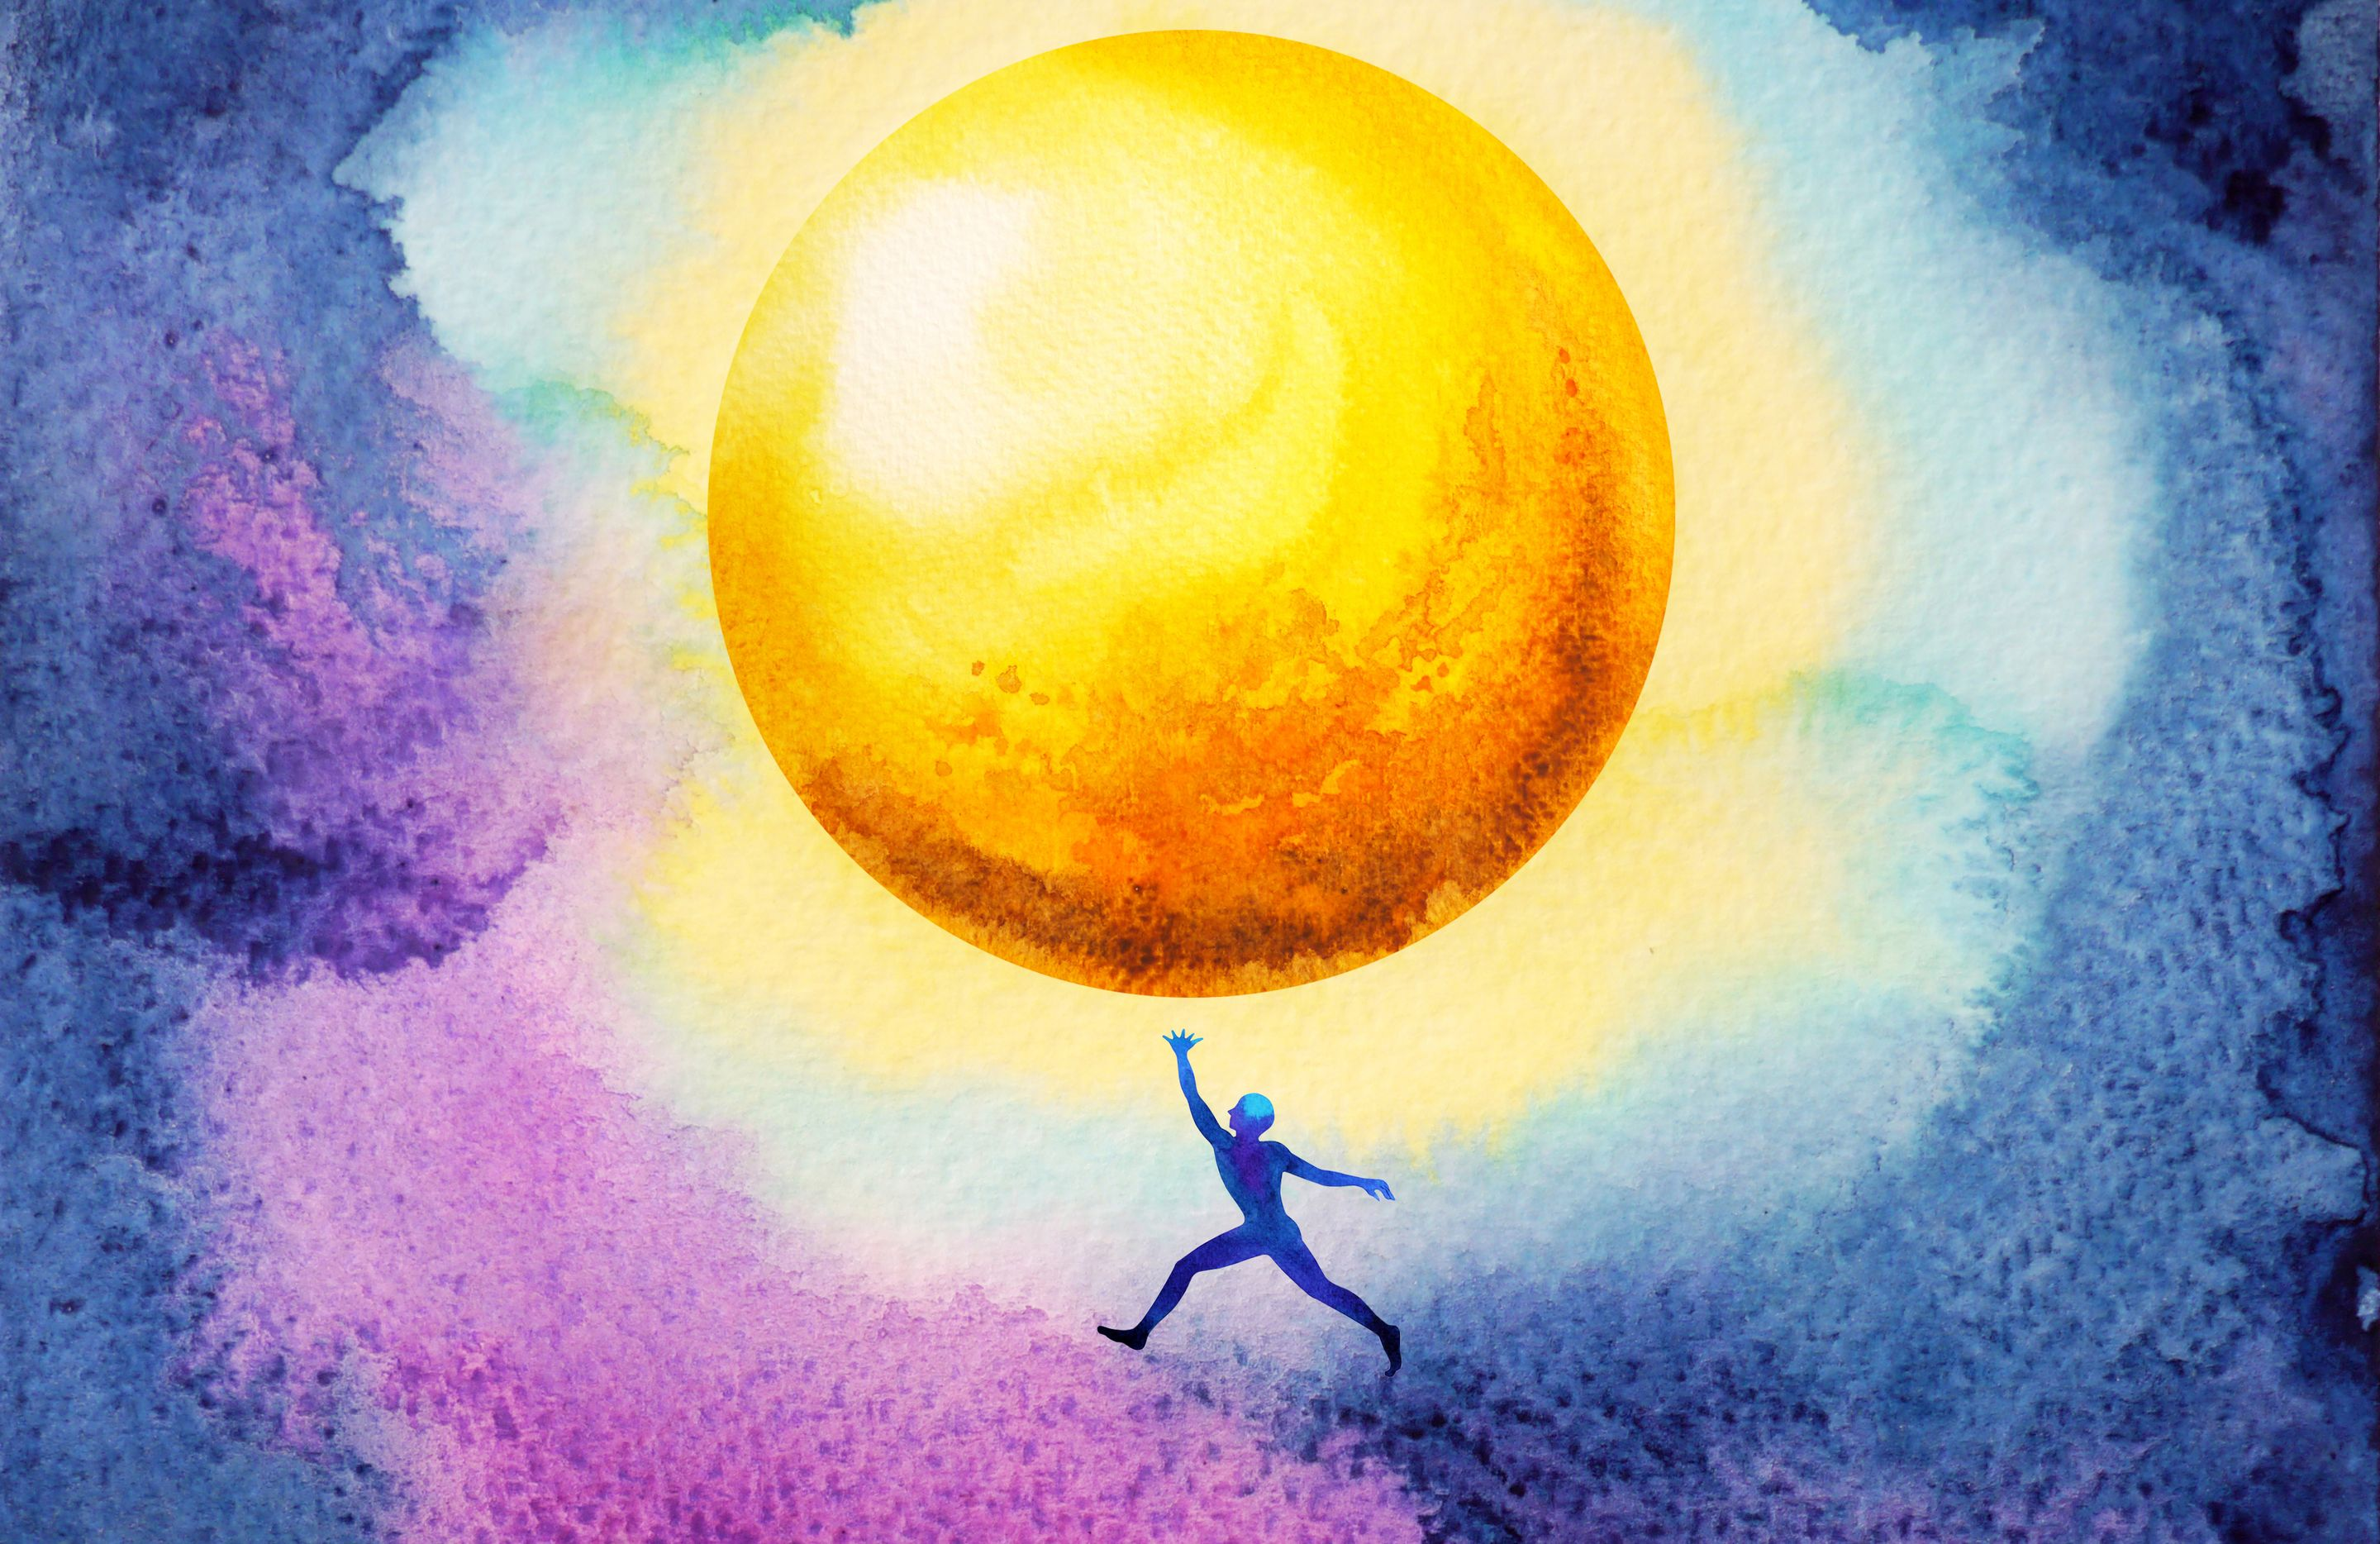 A watercolor painting of a silhouette of a person jumping up in the night sky to reach a glowing, golden moon